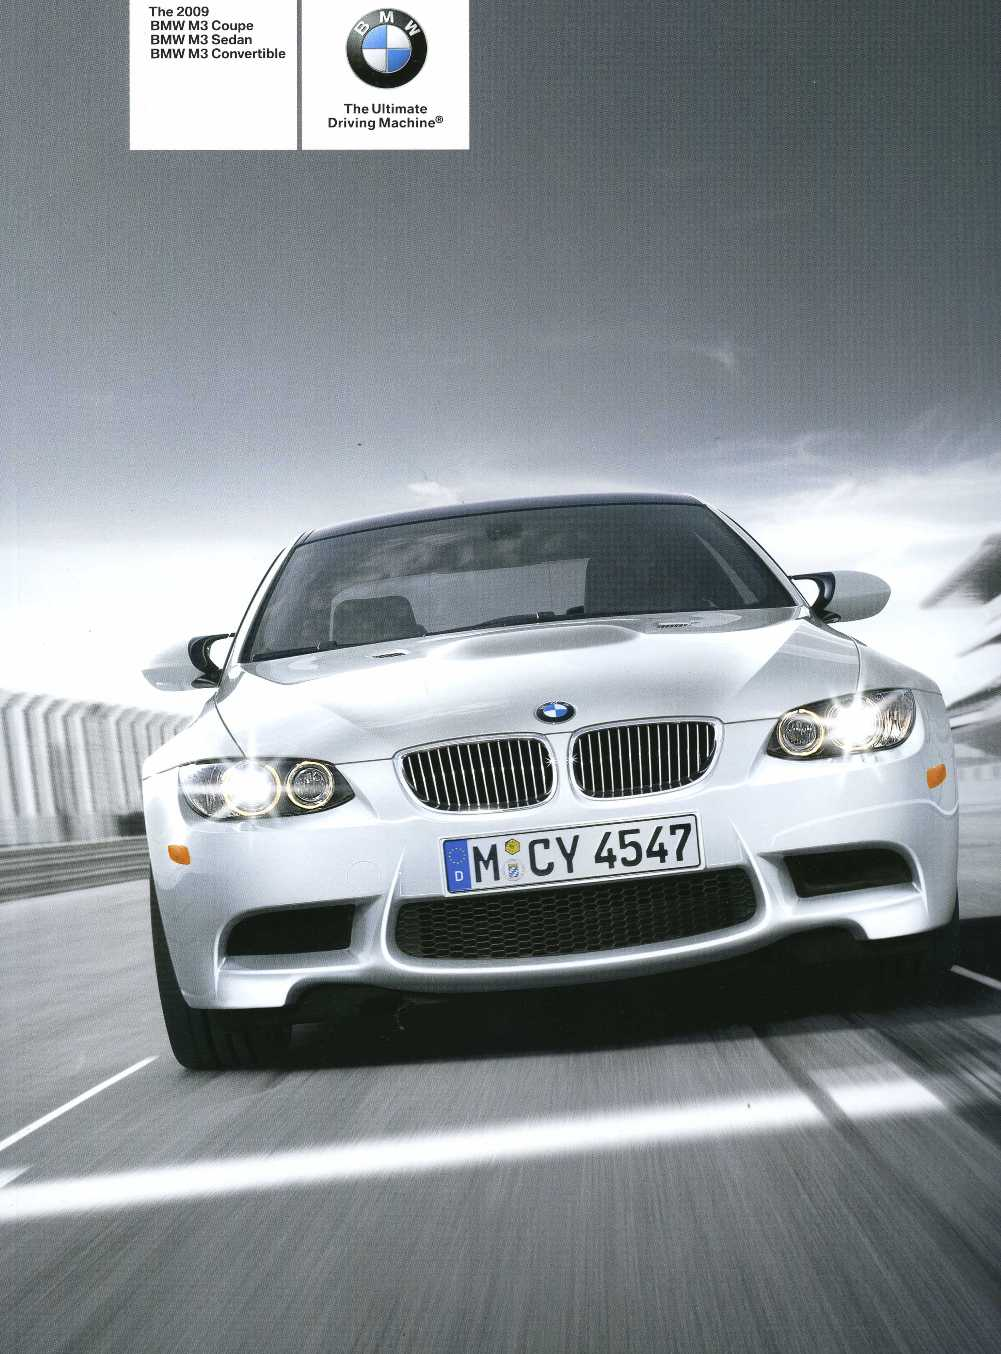 Brochure - The 2009 BMW M3 Coupe BMW M3 Sedan BMW M3 Convertible - E90 / E92 / E93 Brochure